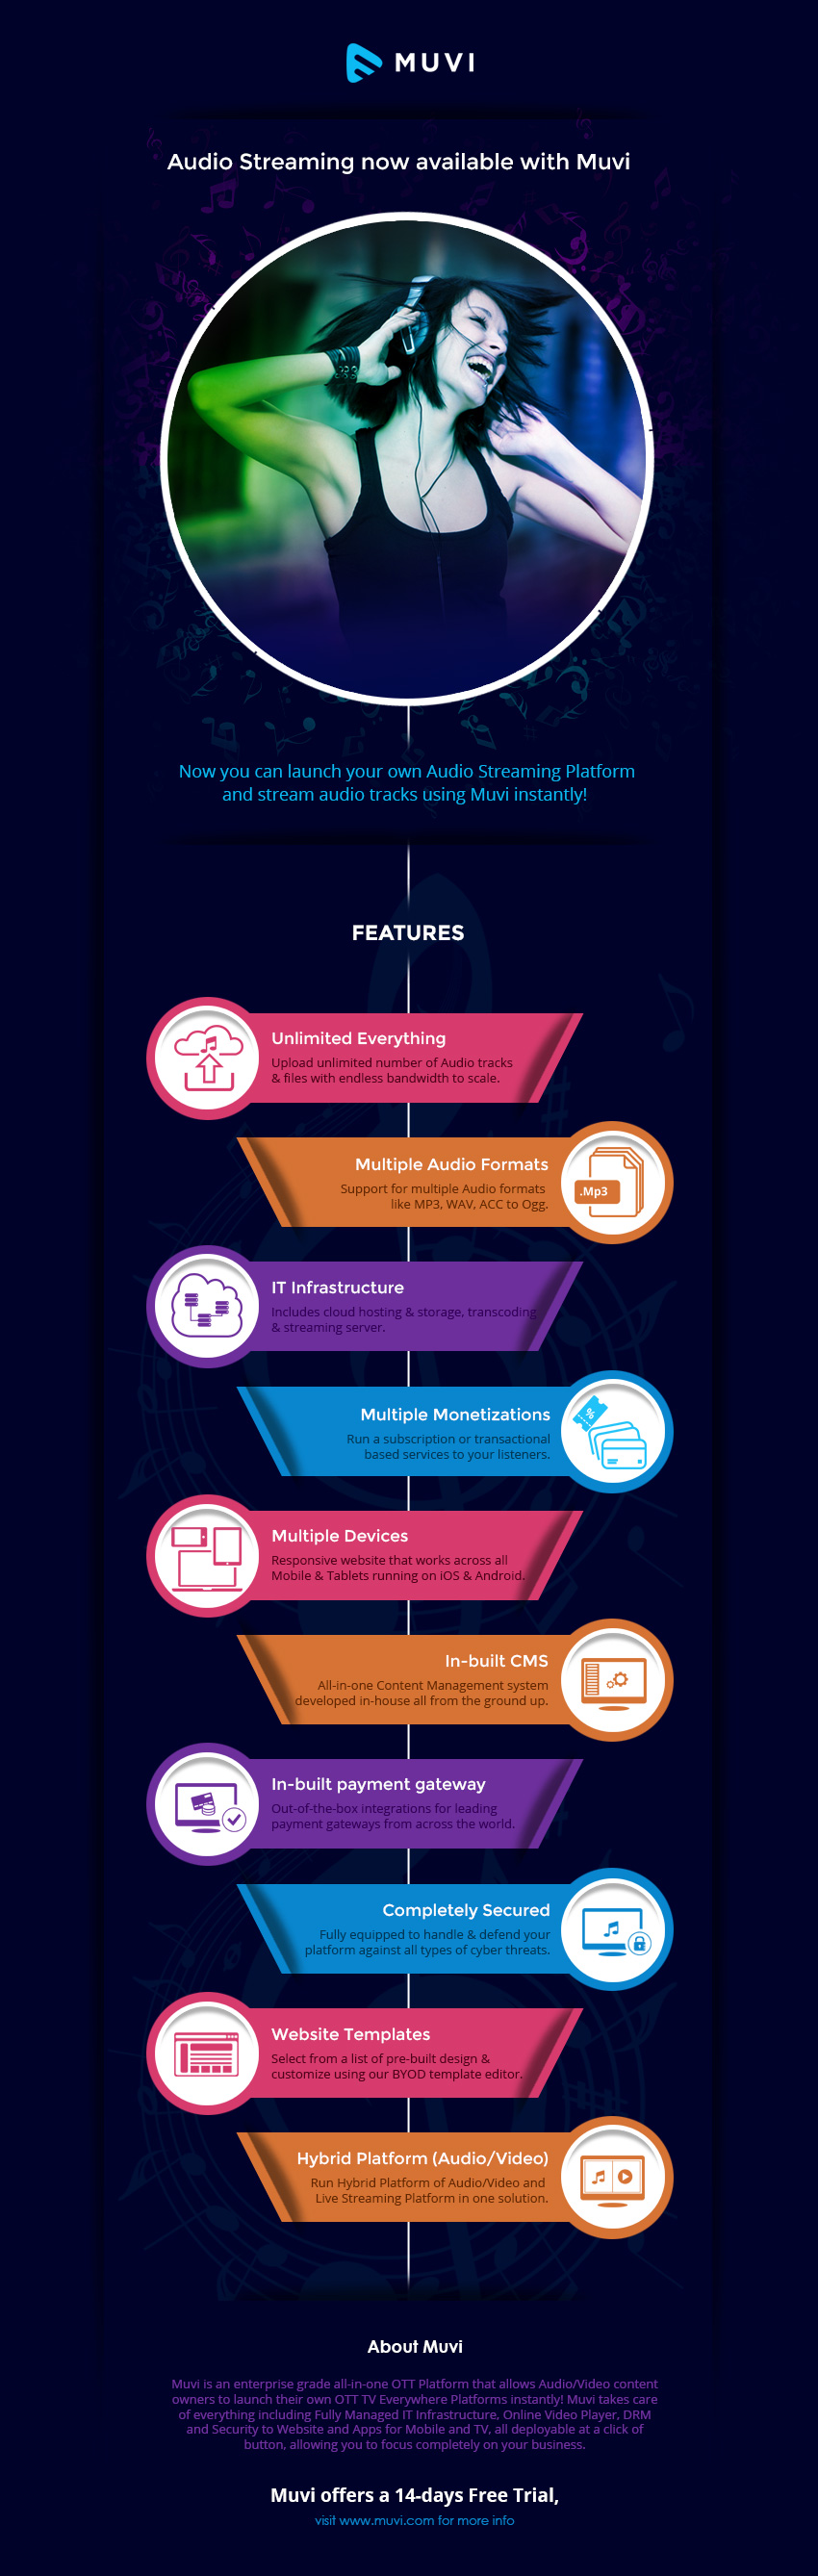 Infographic: Launch your Audio Streaming service instantly!